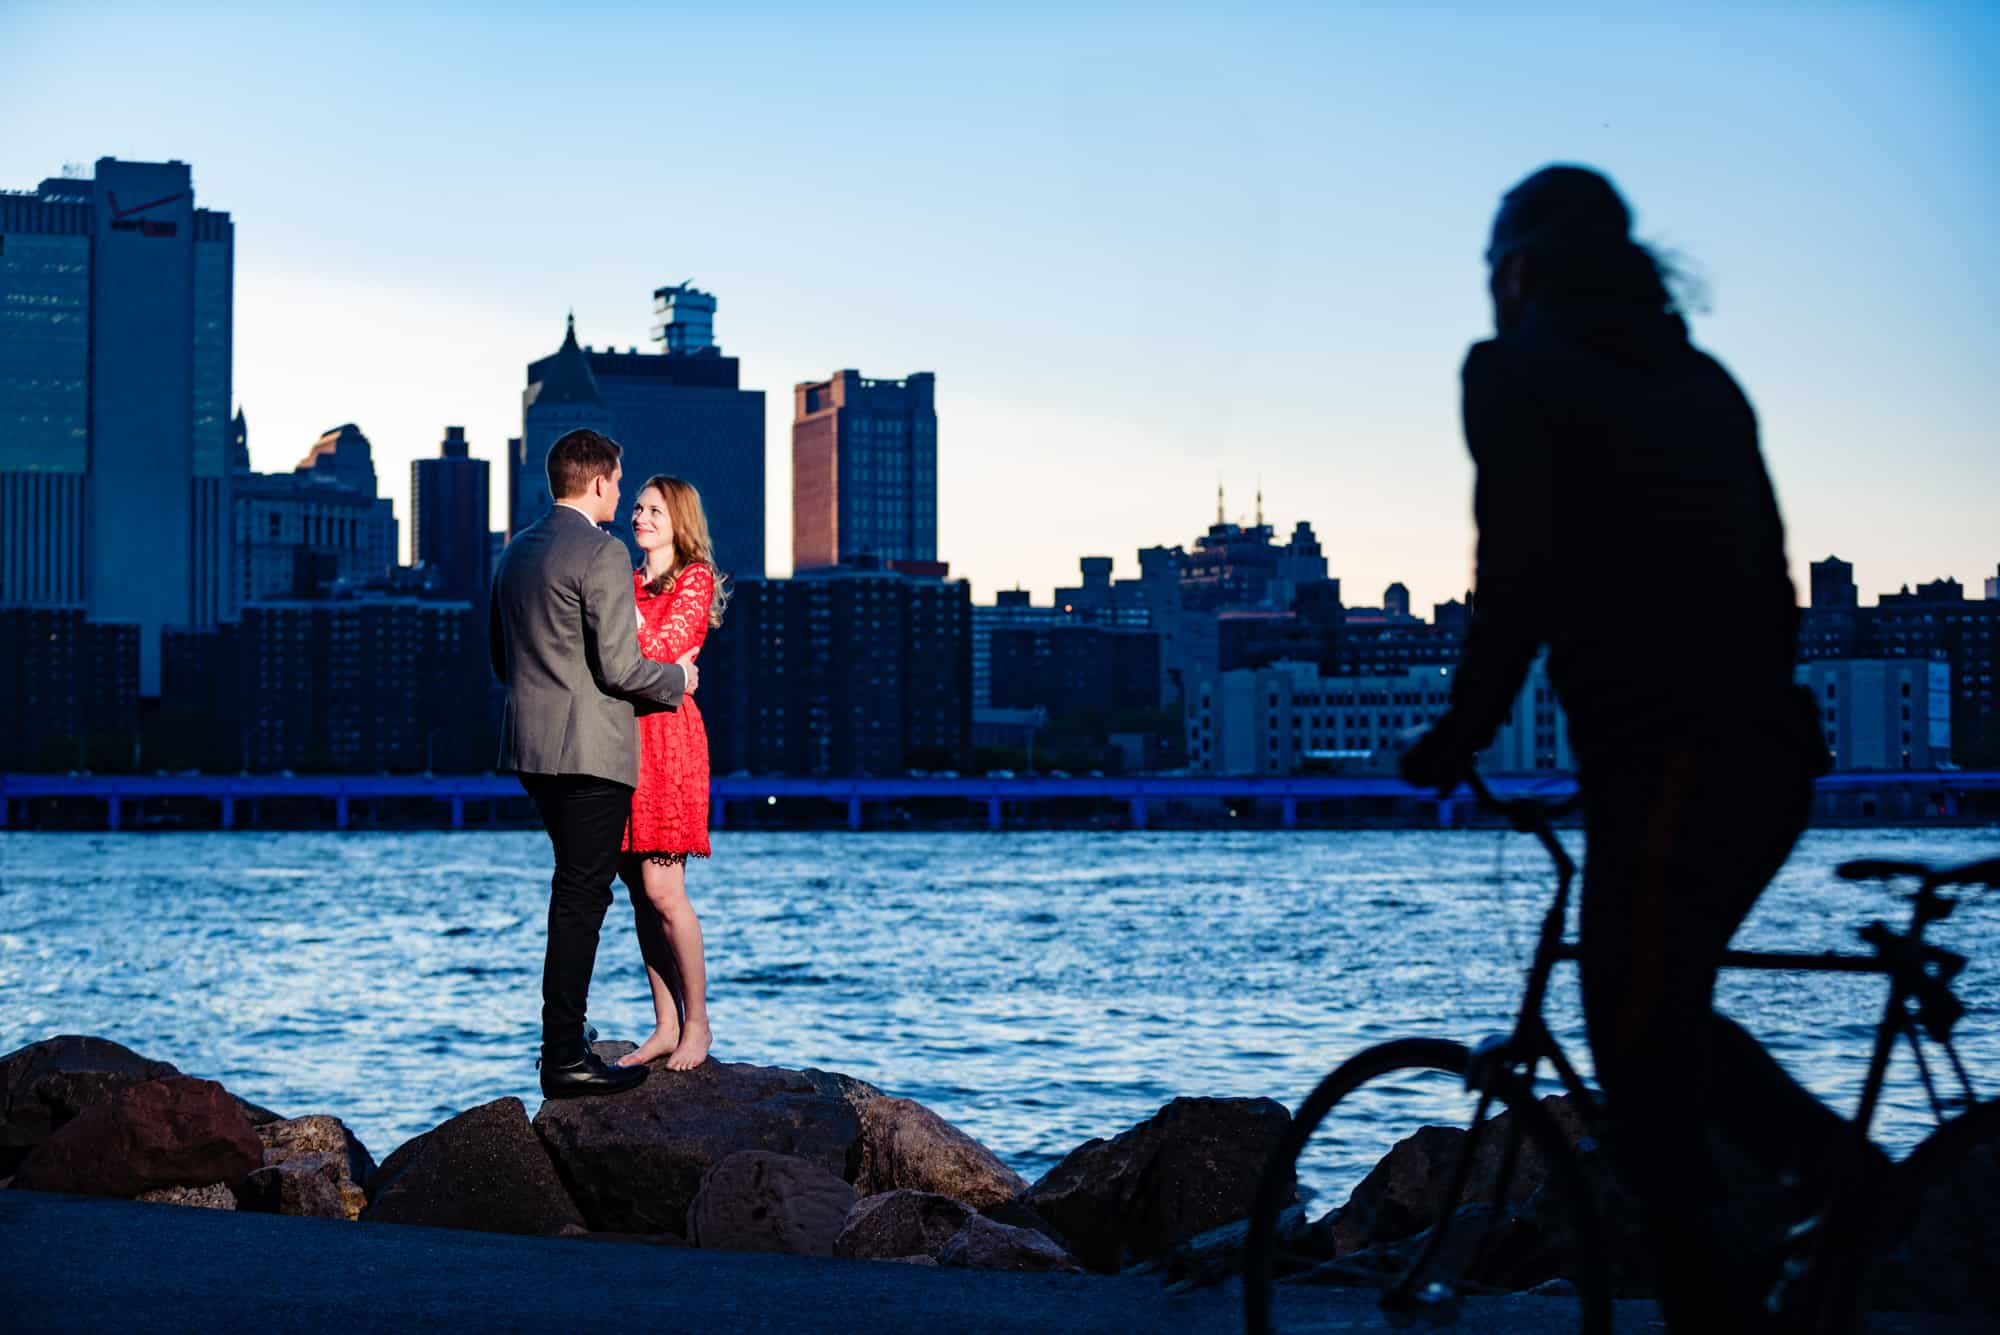 couple embracing while standing on rocks next to a river in DUMBO Brooklyn